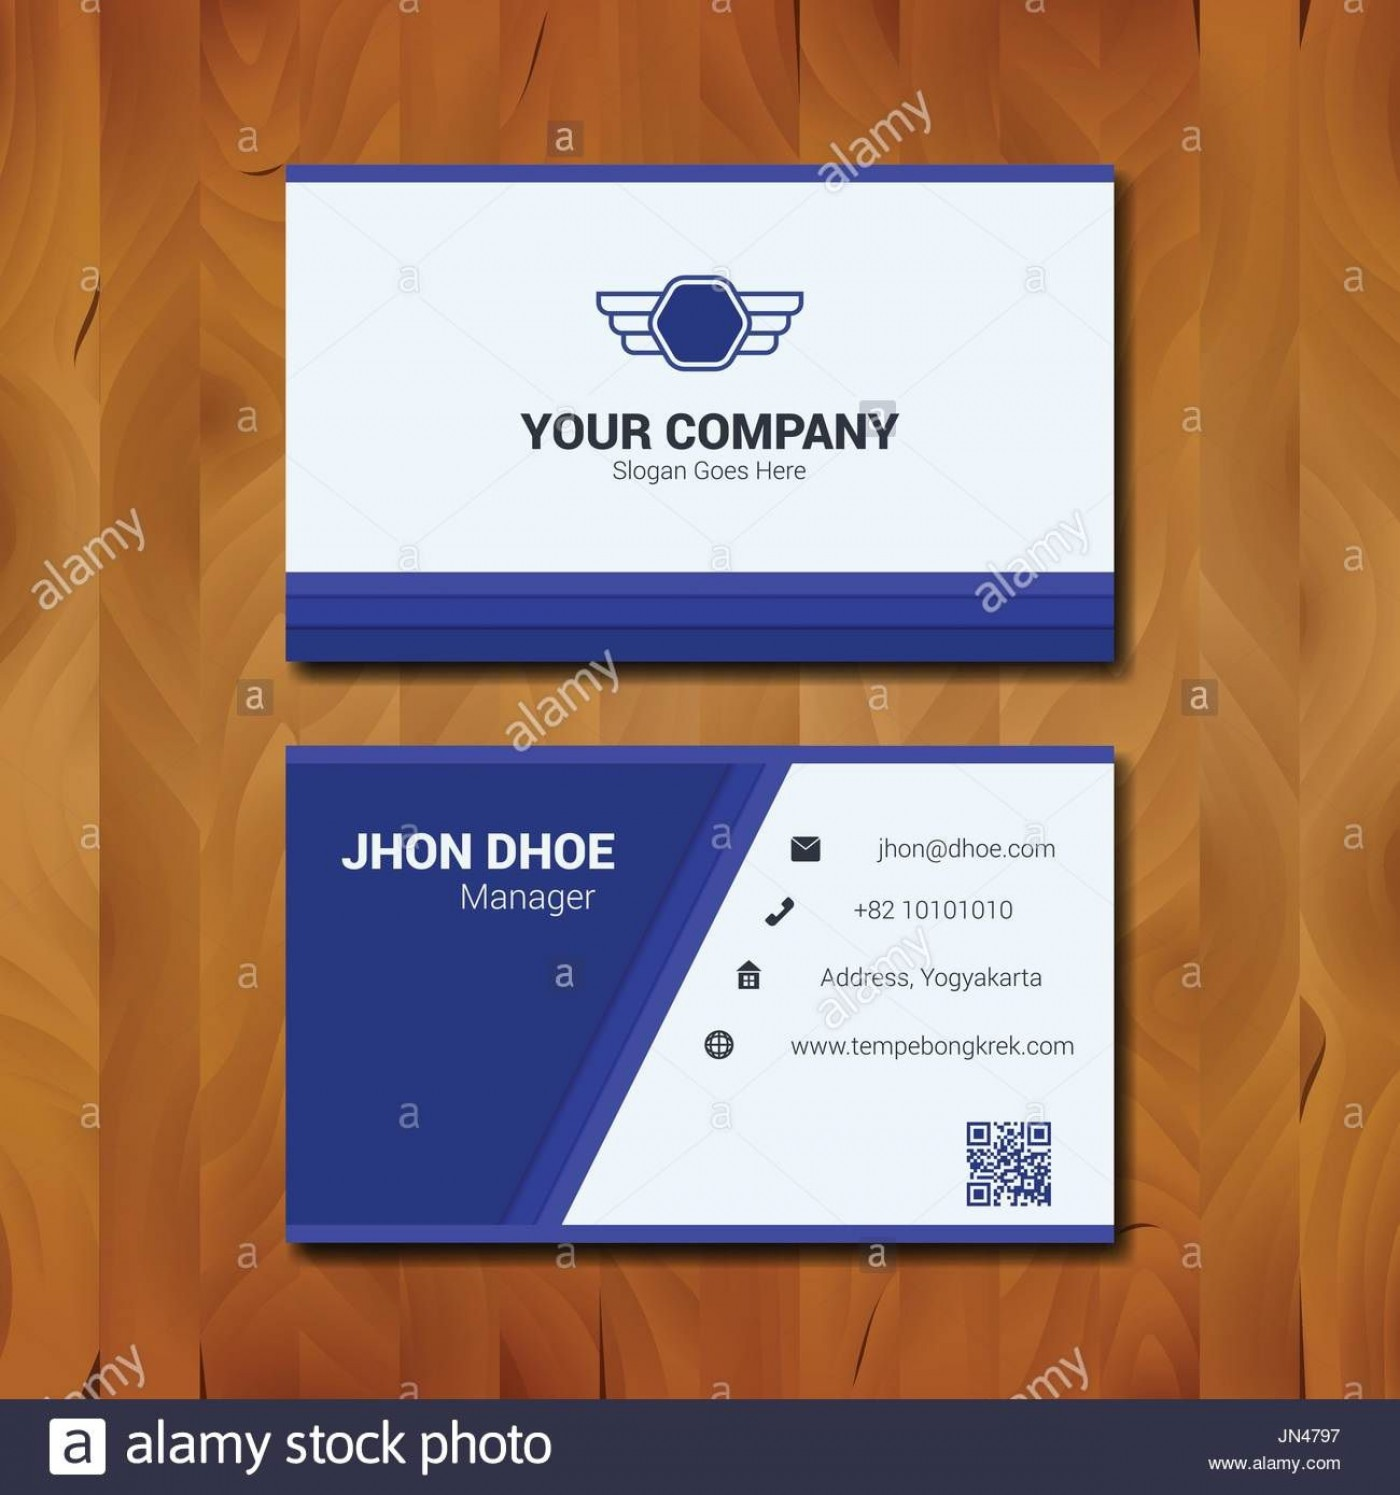 010 Fantastic Simple Visiting Card Design High Definition  Calling Busines Template Free In Photoshop1400